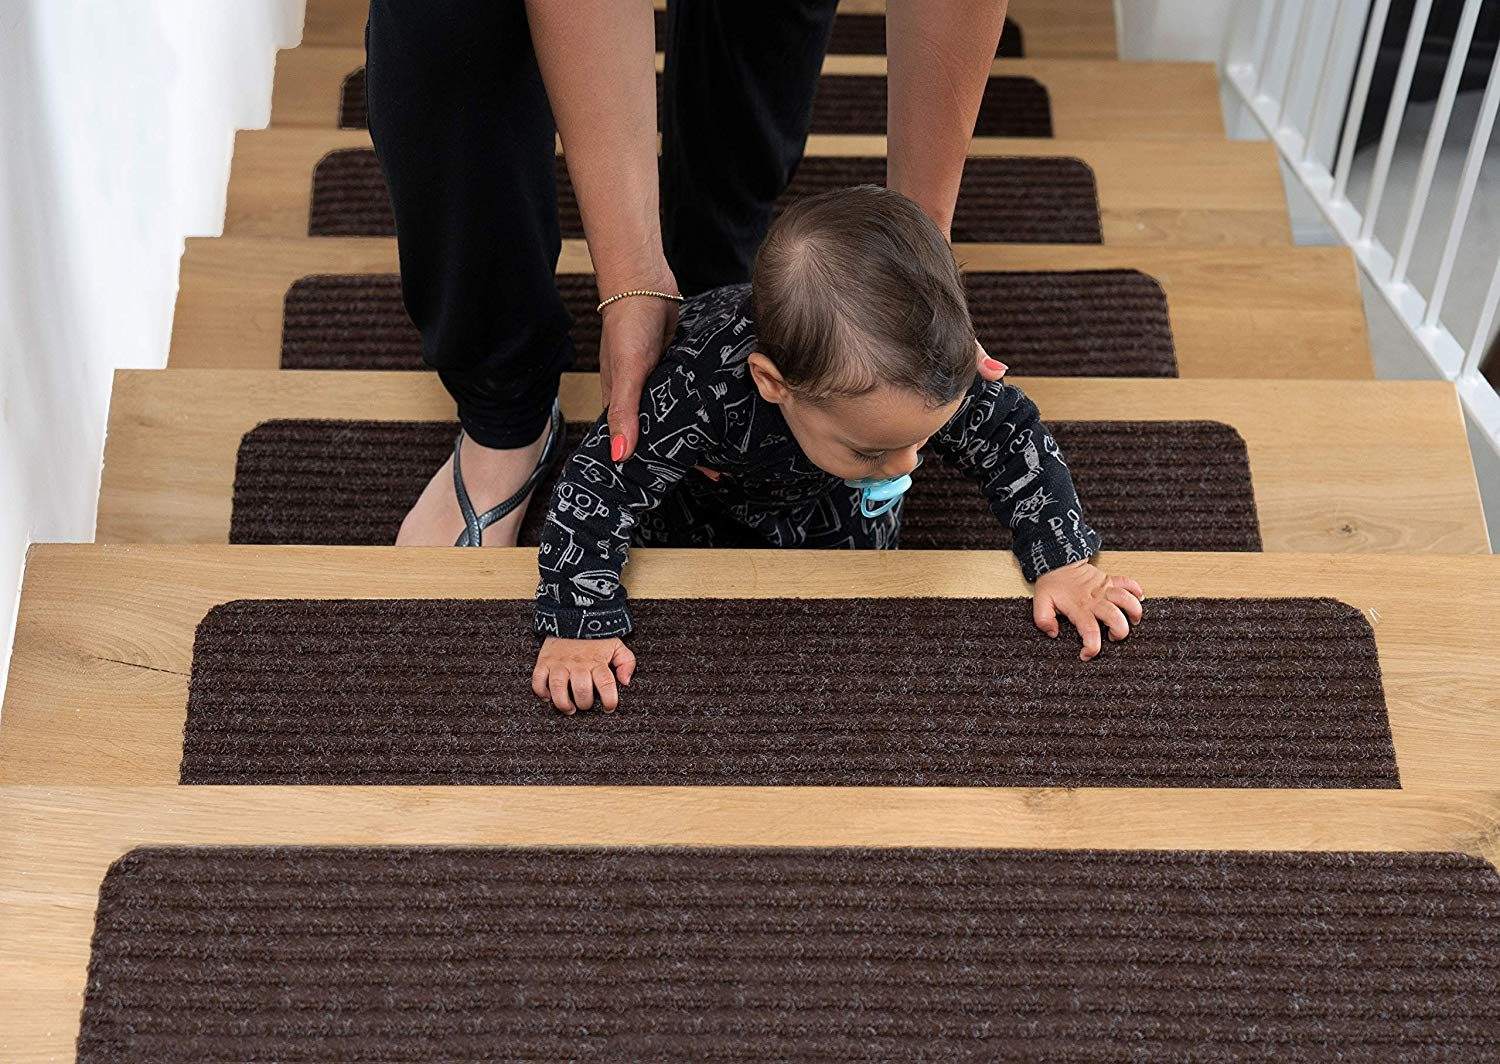 Wotoban Stair Treads Carpet Non Slip Indoor Set of 14 Carpet Stair Treads 8 X 30 Stair Rugs Mats Runners Safety Slip Resistant for Kids Grey Elders and Dogs